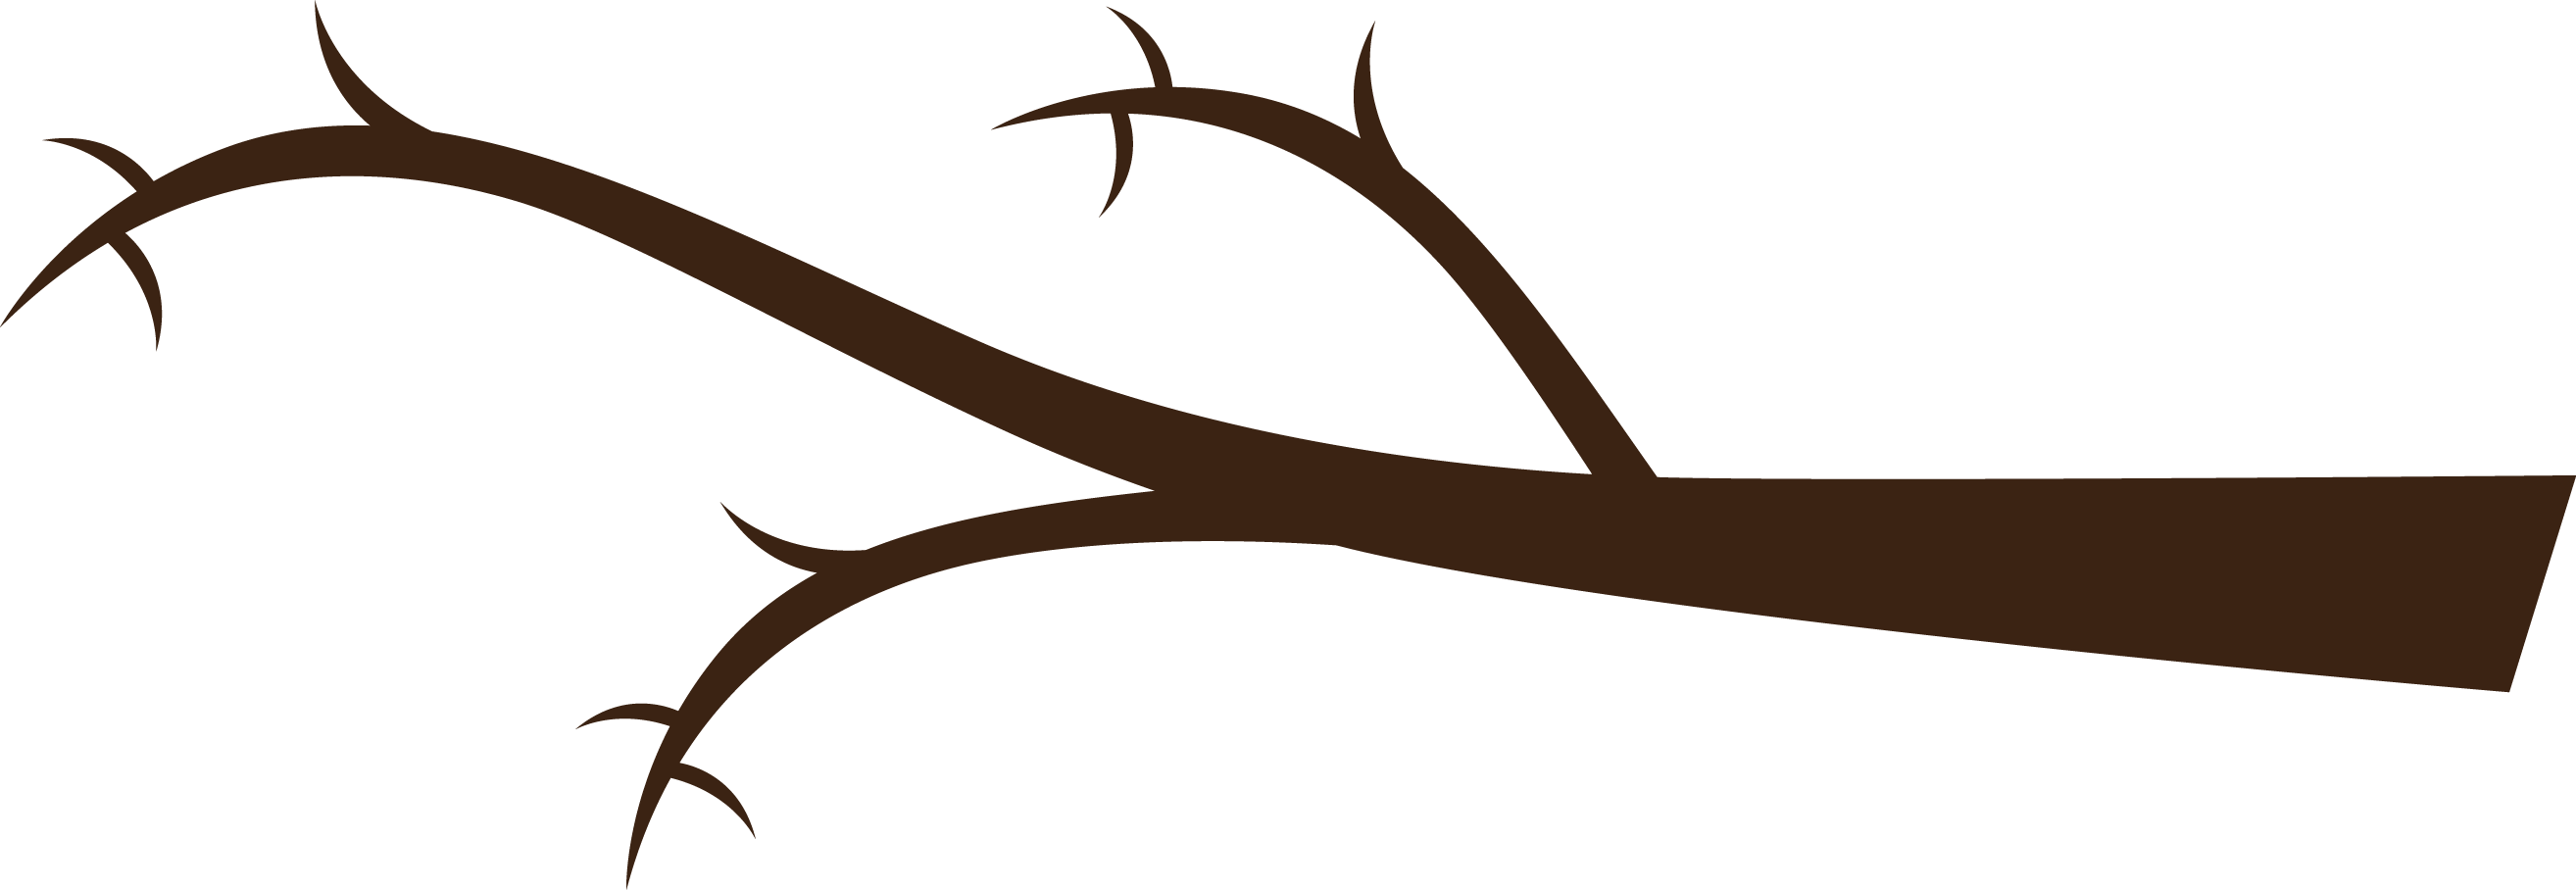 Collection of Tree branch clipart.